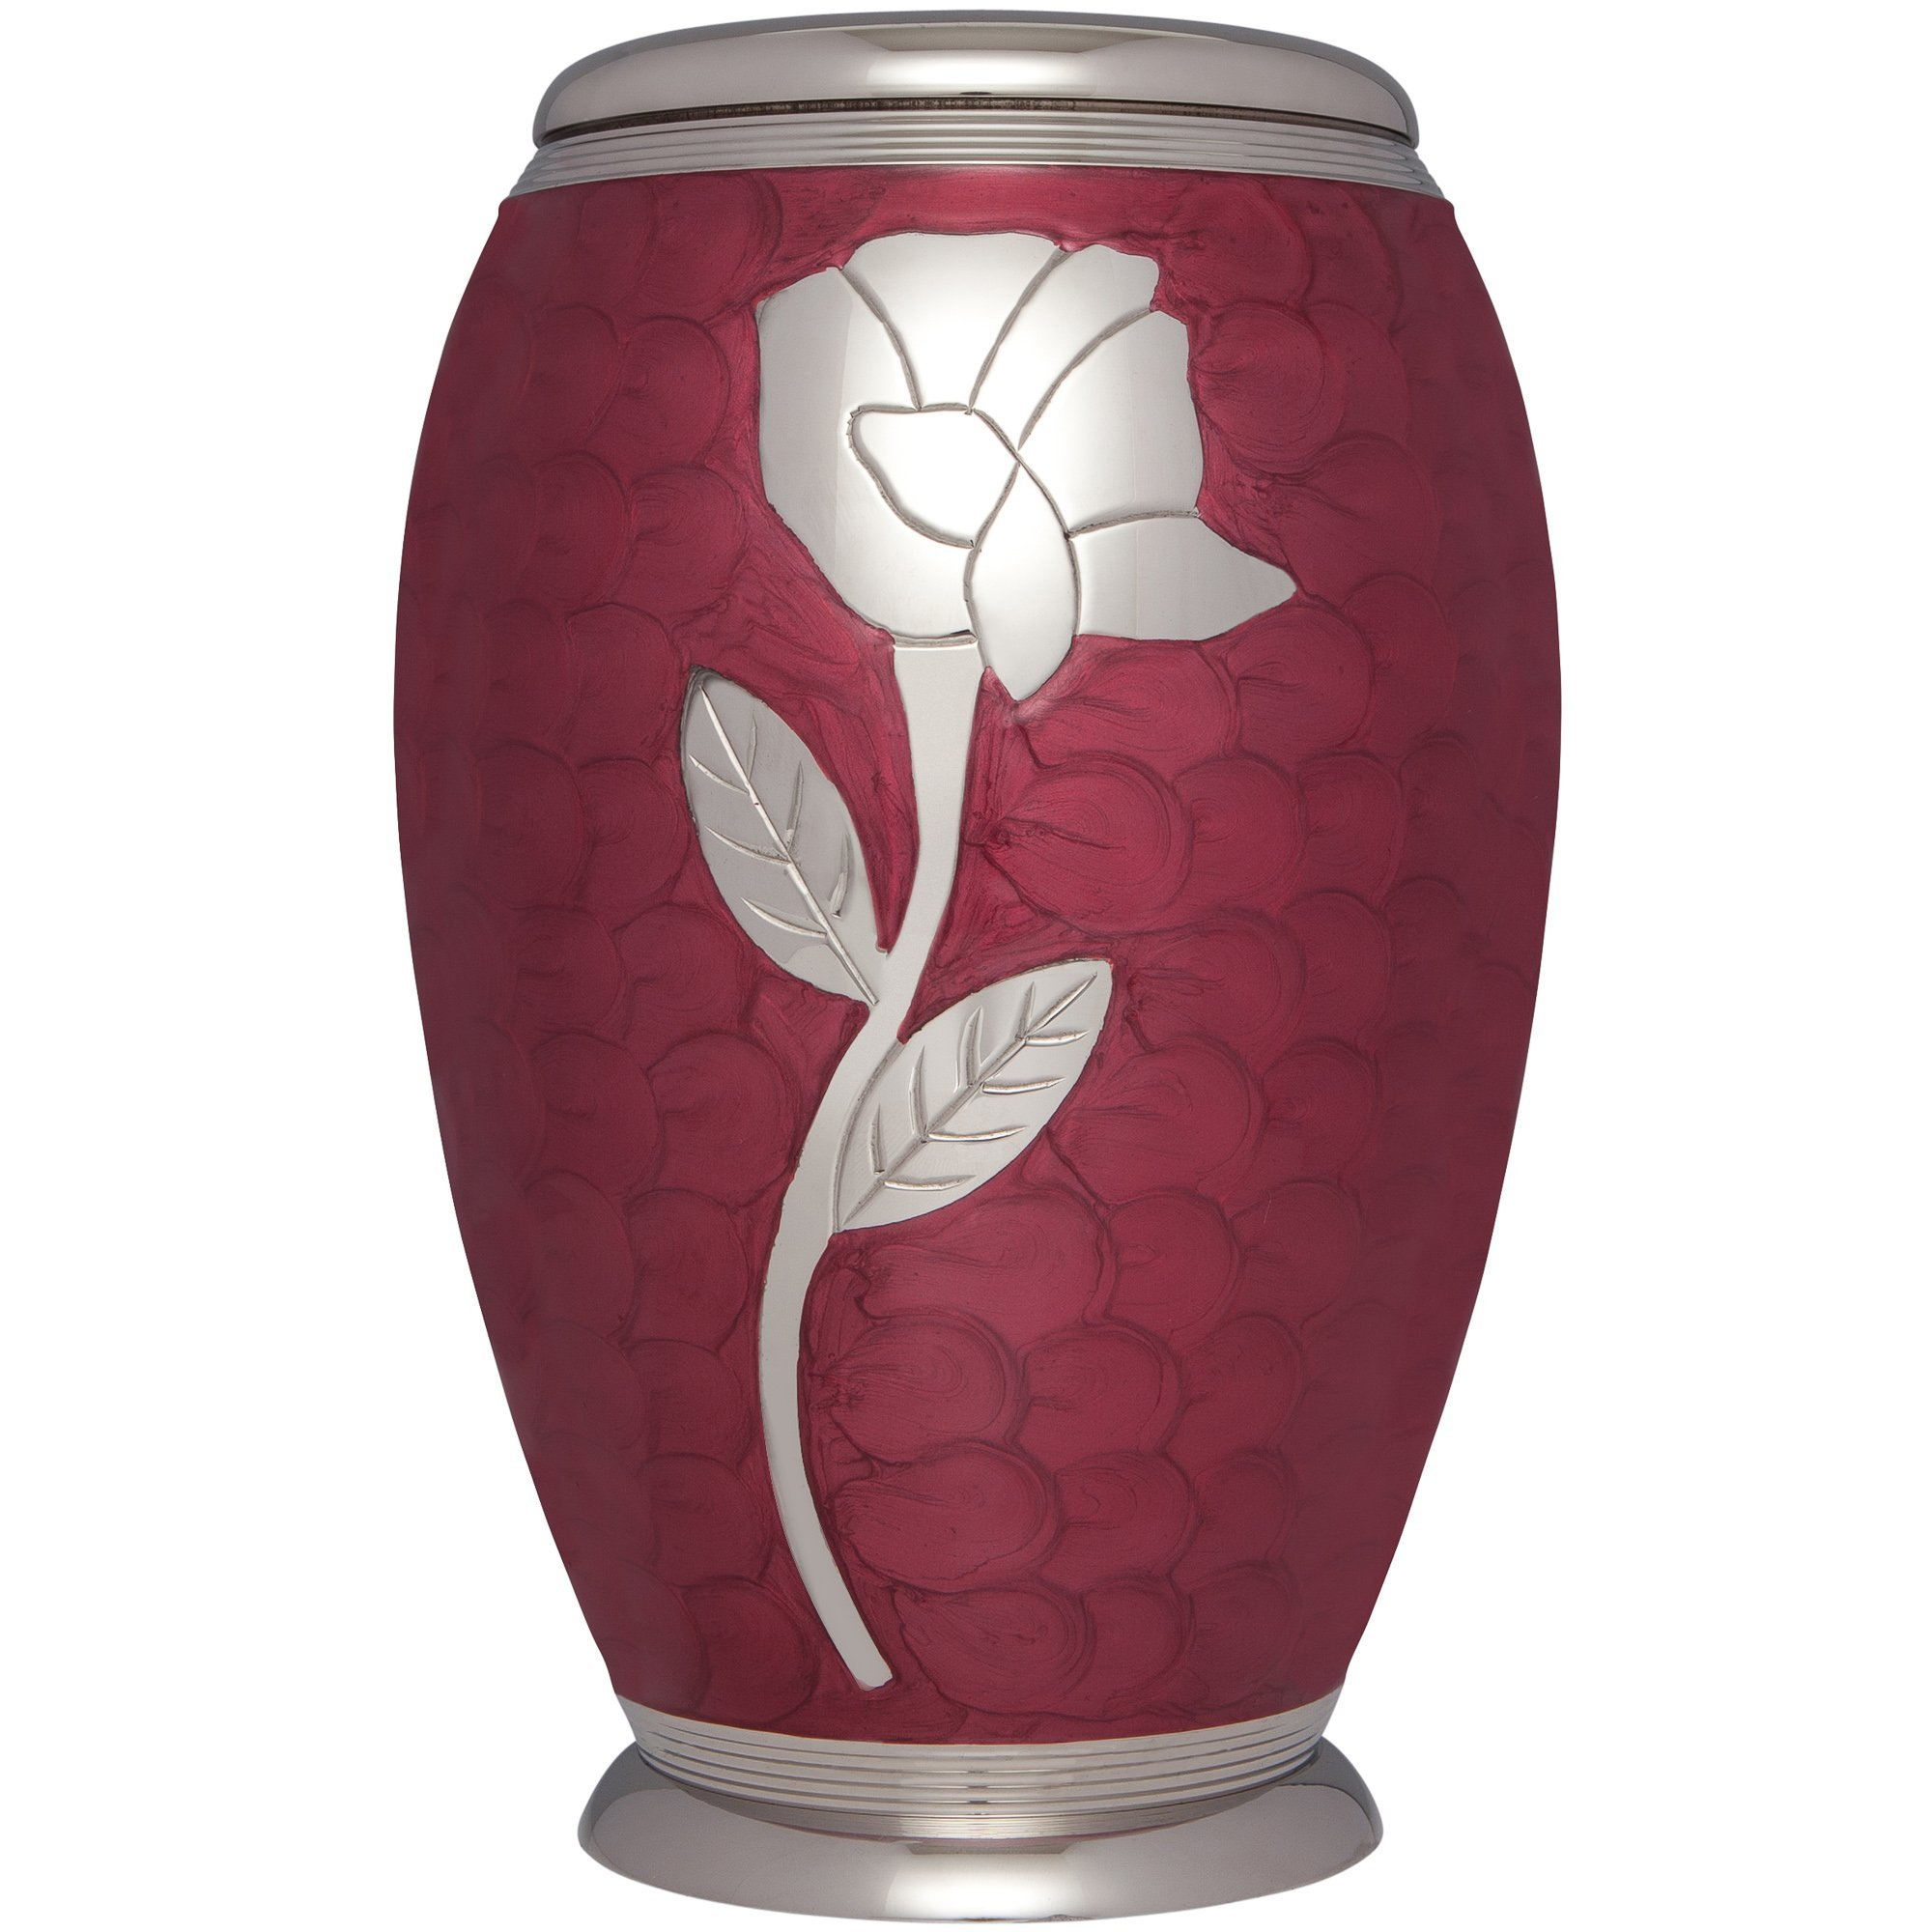 Funeral Urn by Liliane - Cremation Urn for Human or Pet Ashes - Hand Made in Brass & Hand Engraved - Display Urn at Home or in Niche at Columbarium -Talia Model (Red Enamel with Silver Flower,Adult) by Liliane Memorials